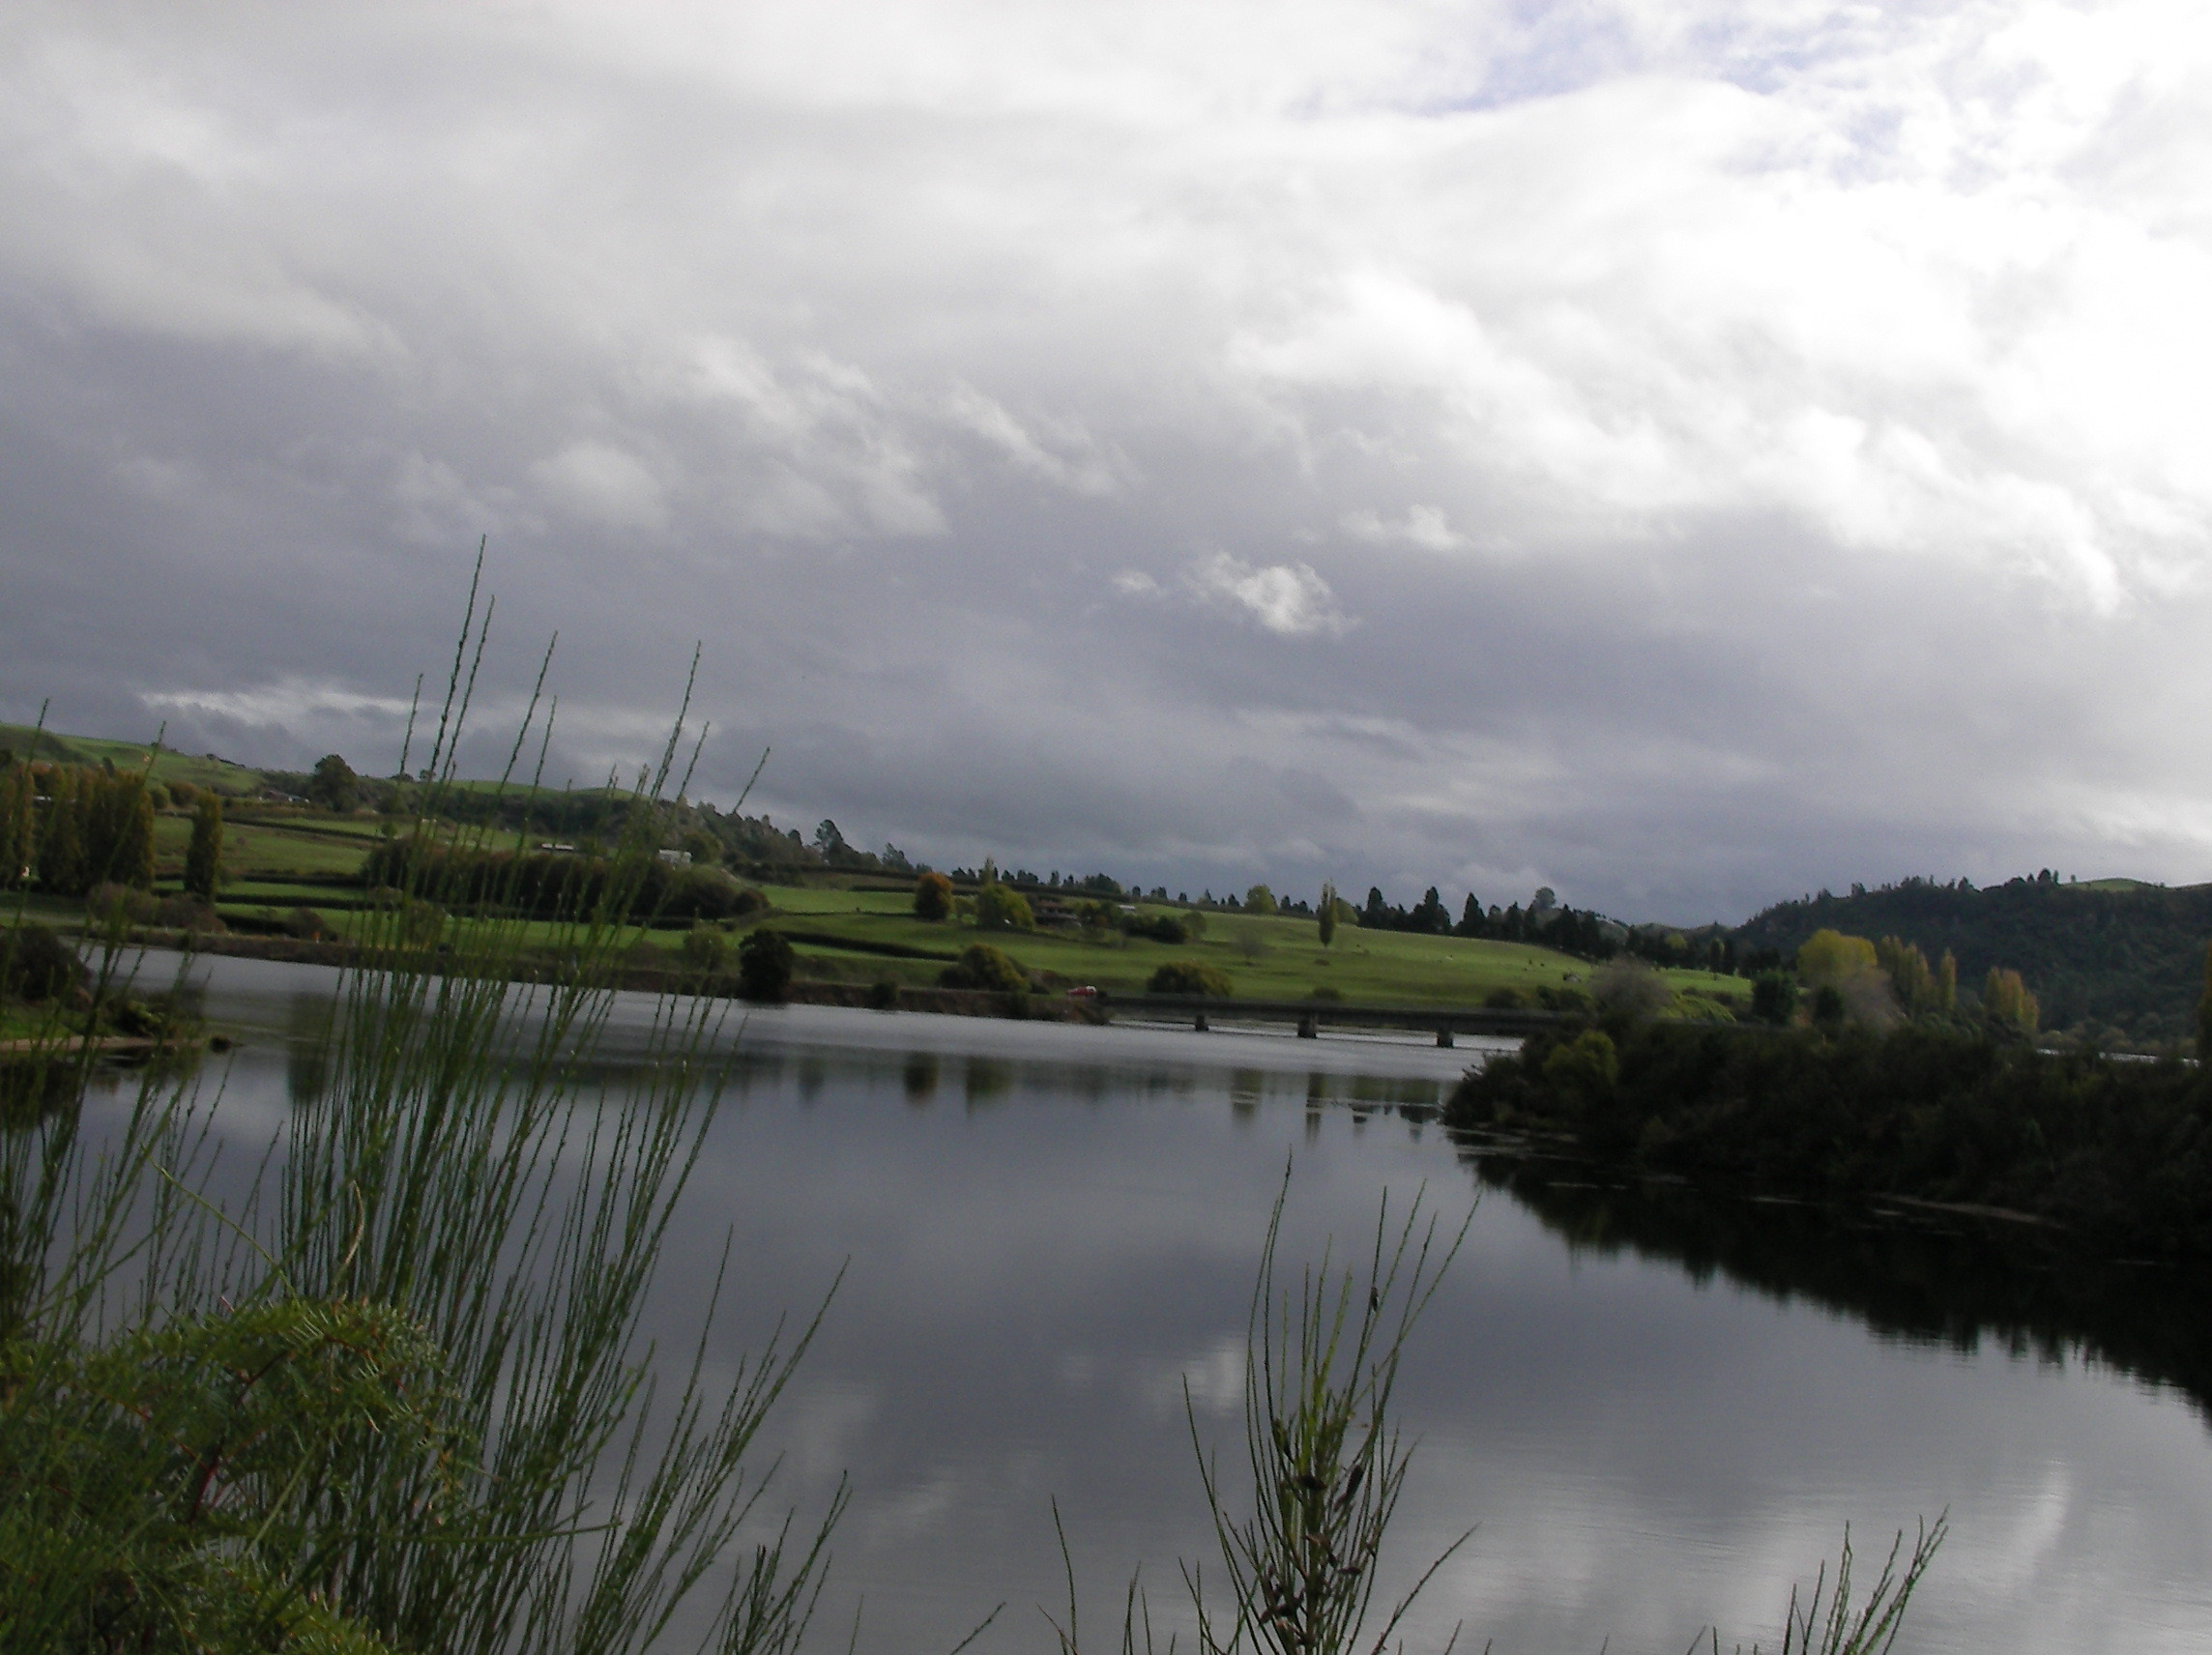 Karapiro New Zealand  City pictures : Lake karapiro New Zealand Photography Photo 7119956 Fanpop